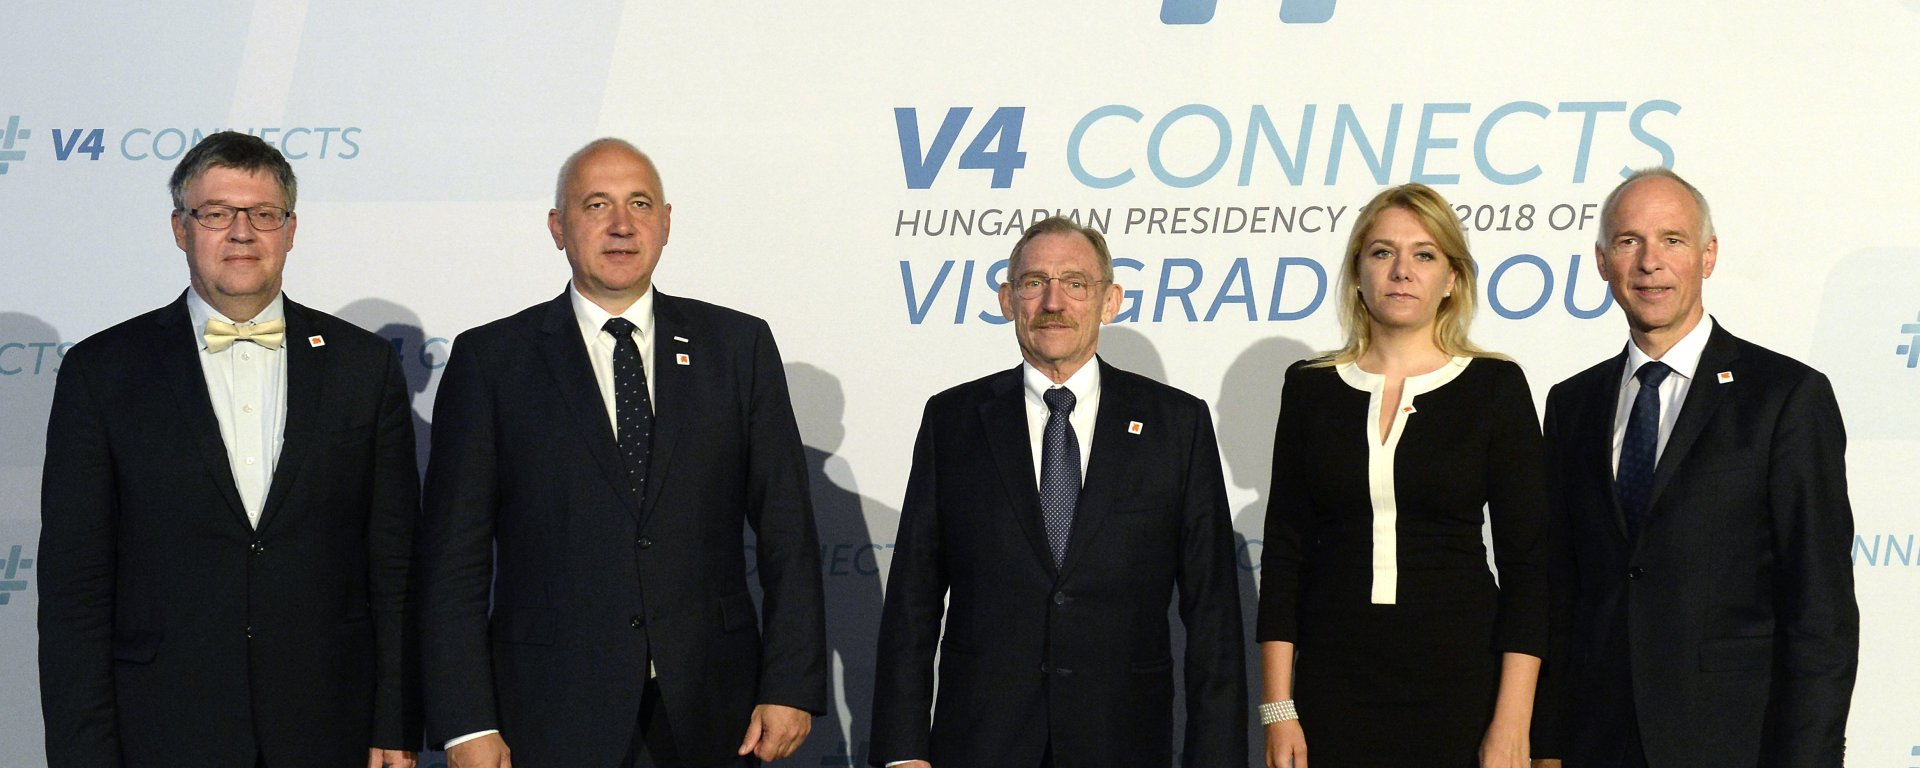 Visegrad interior ministers meet in Budapest